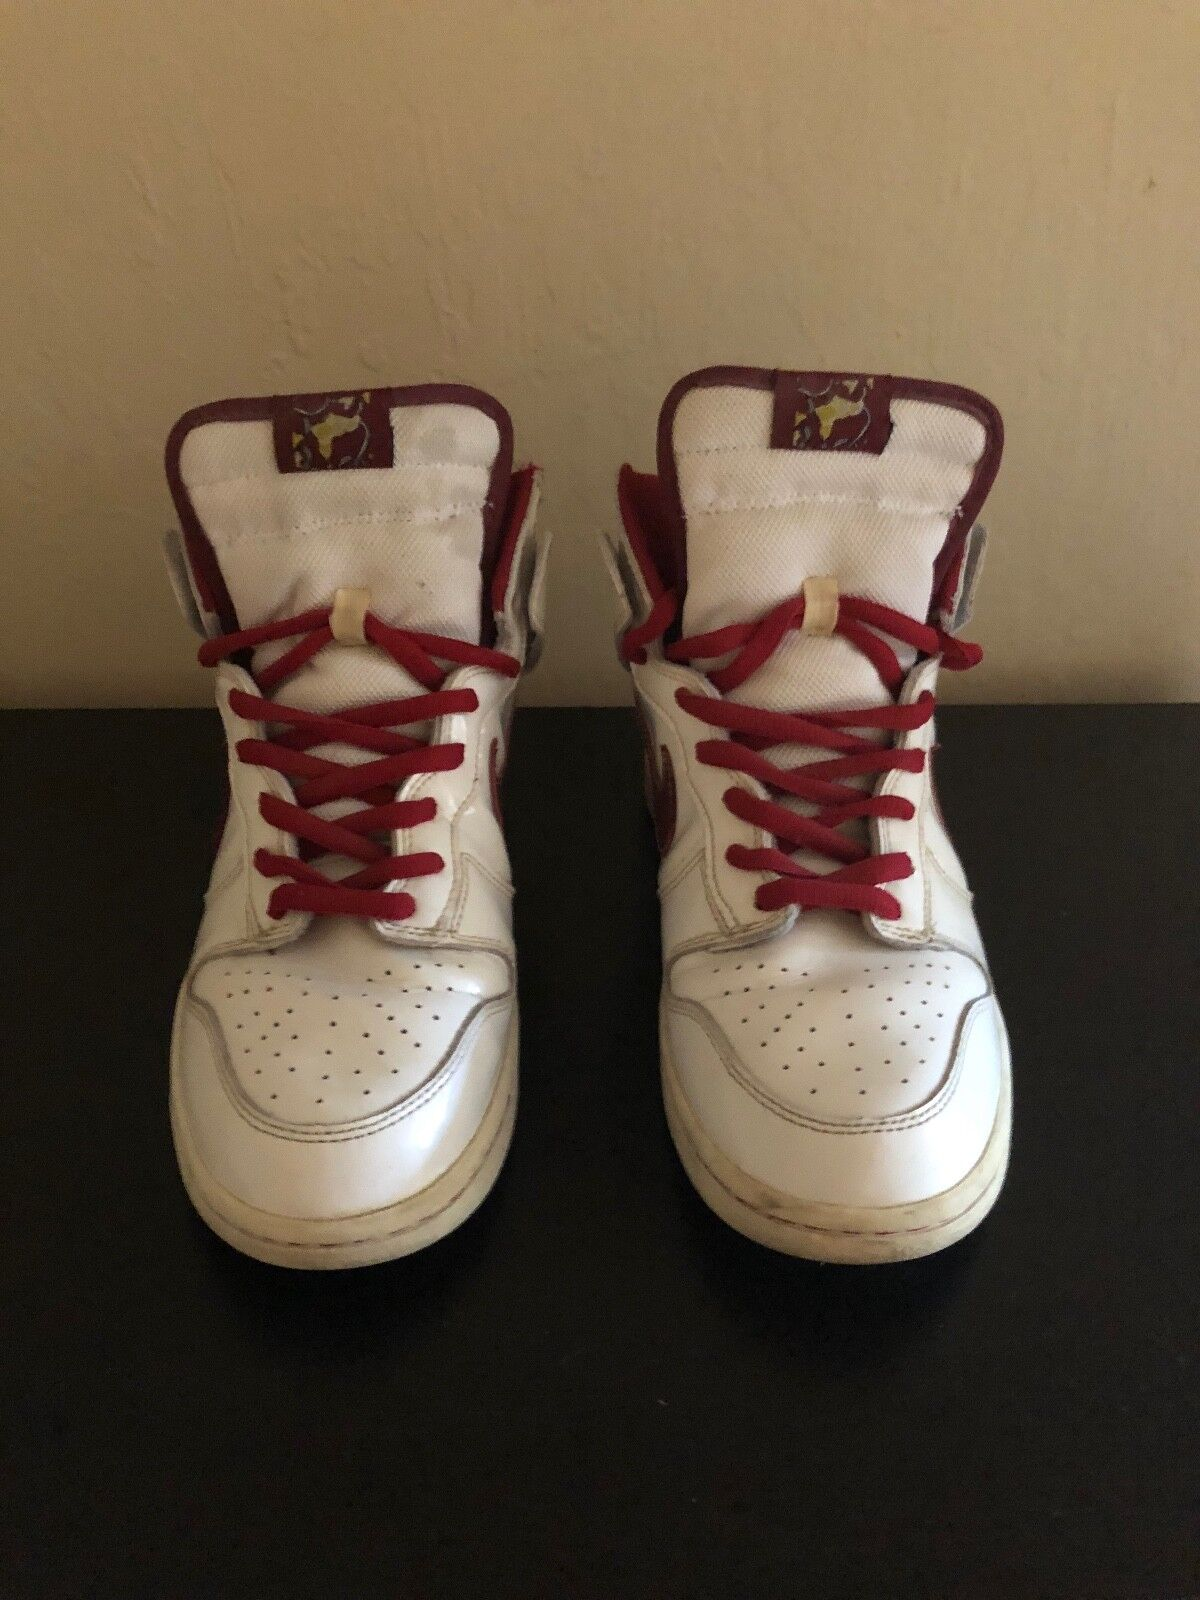 Nike SB Dunk High Mafia, White   College Red, Size 9.5